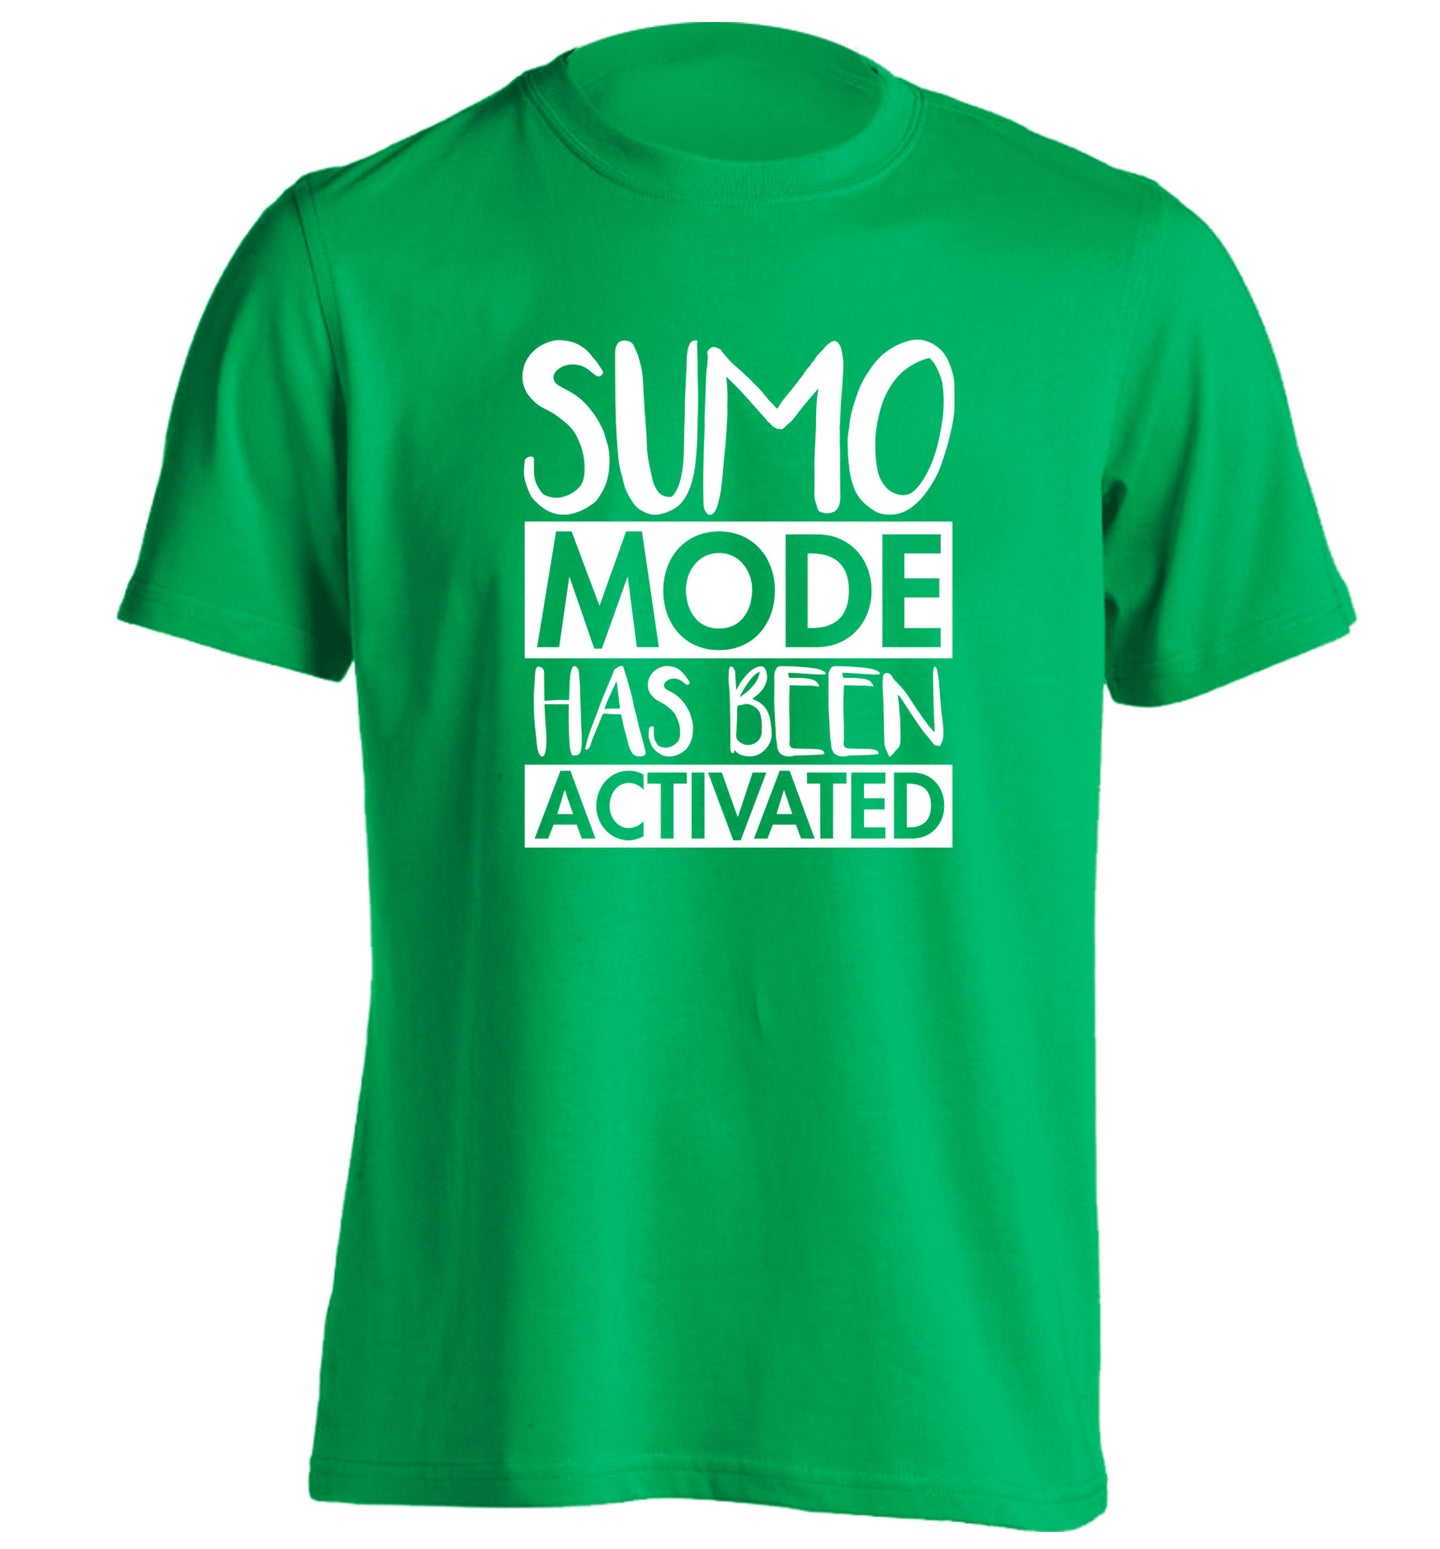 Sumo mode activated adults unisex green Tshirt 2XL